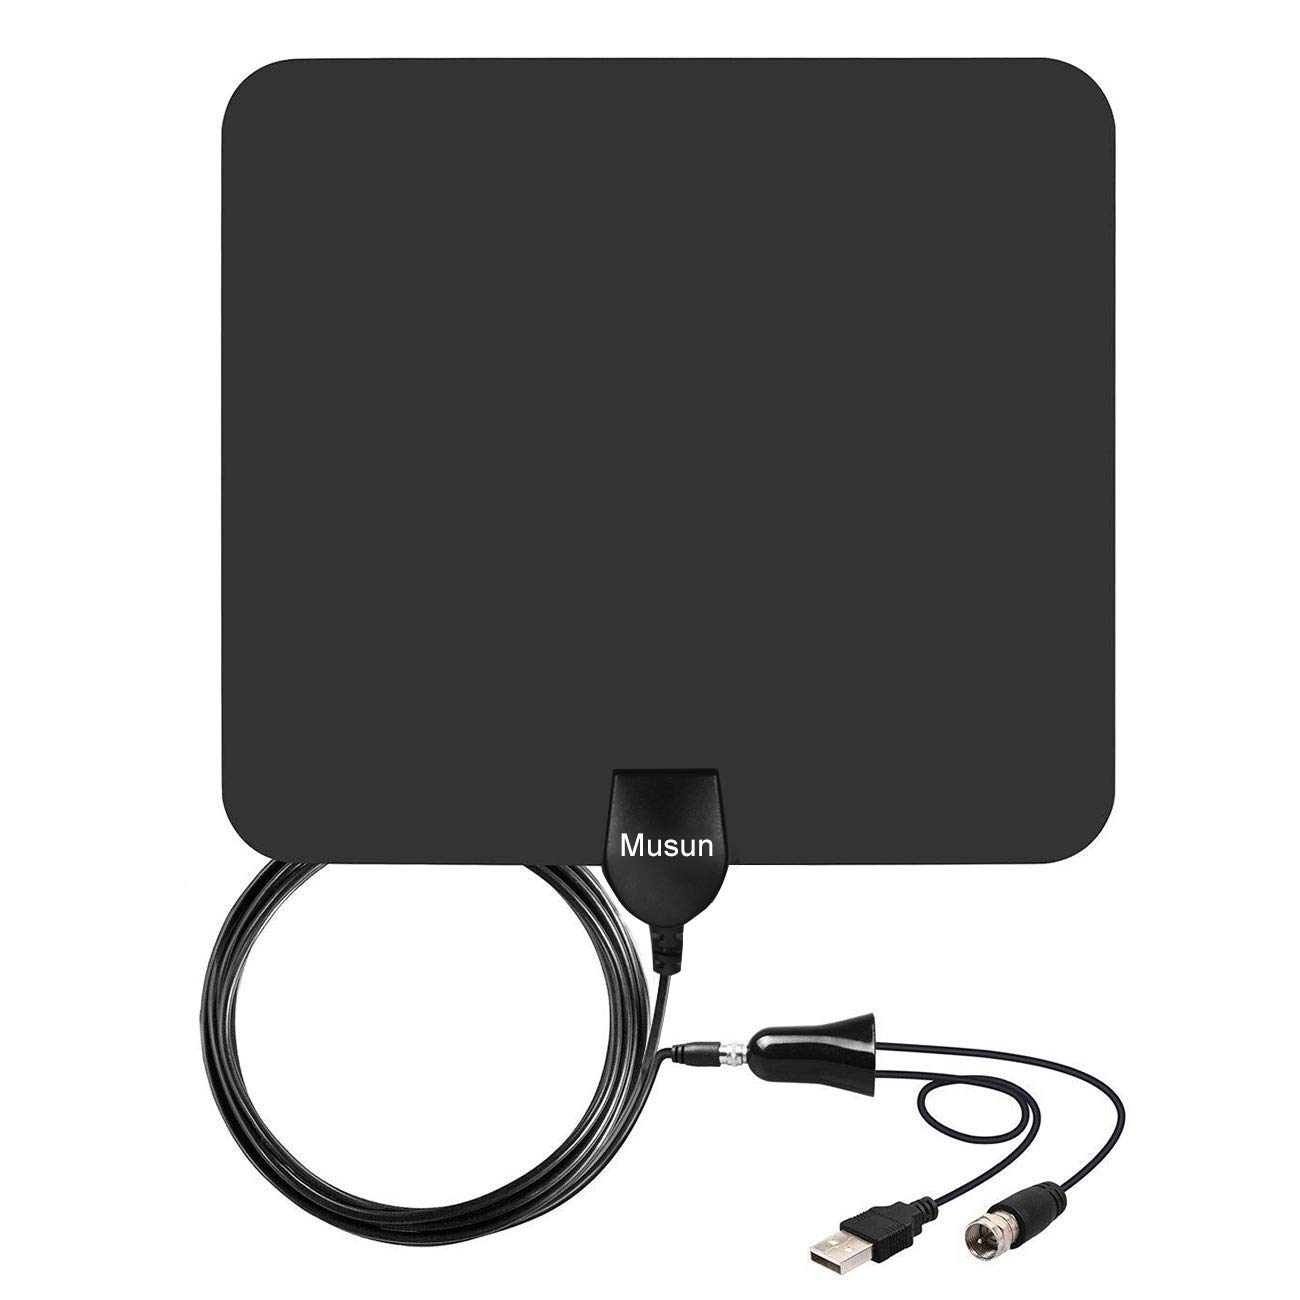 [2019 Latest] Amplified HD Digital TV Antenna 60-95 Mile Range.Support 4K HD VHF UHF Freeview Television Local Channels w/Detachable Signal Amplifier and 13.3ft Longer Coax Cable by Musun